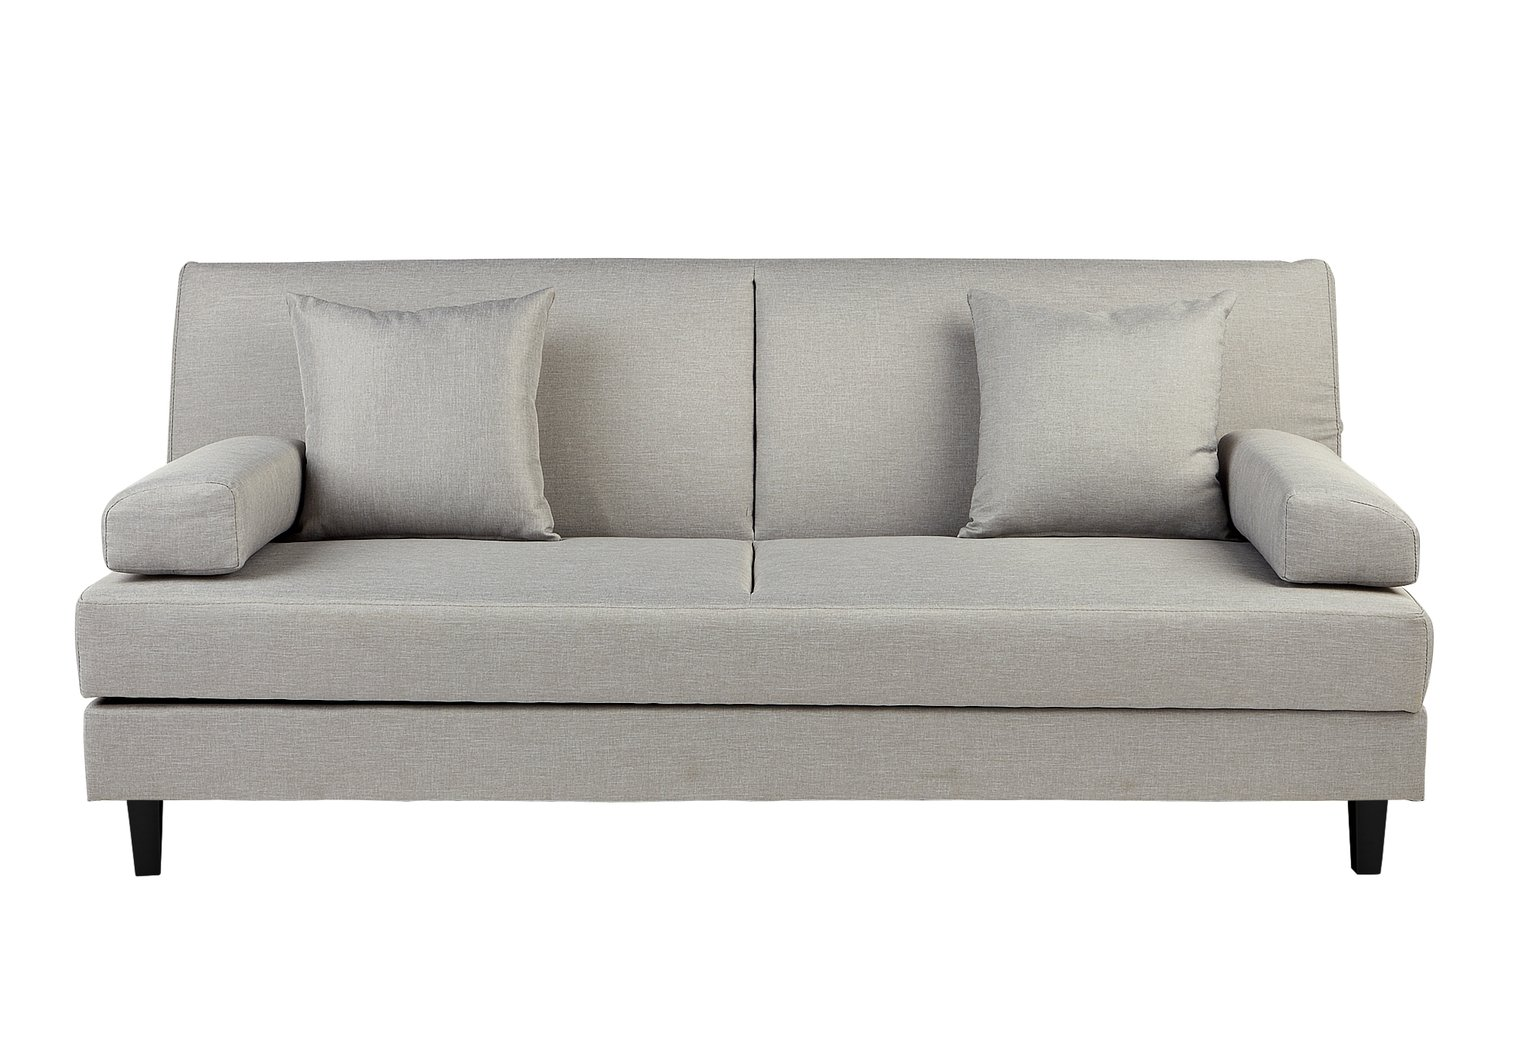 Buy Argos Home Chase Fabric Clic Clac Sofa Bed - Light Grey | Sofa